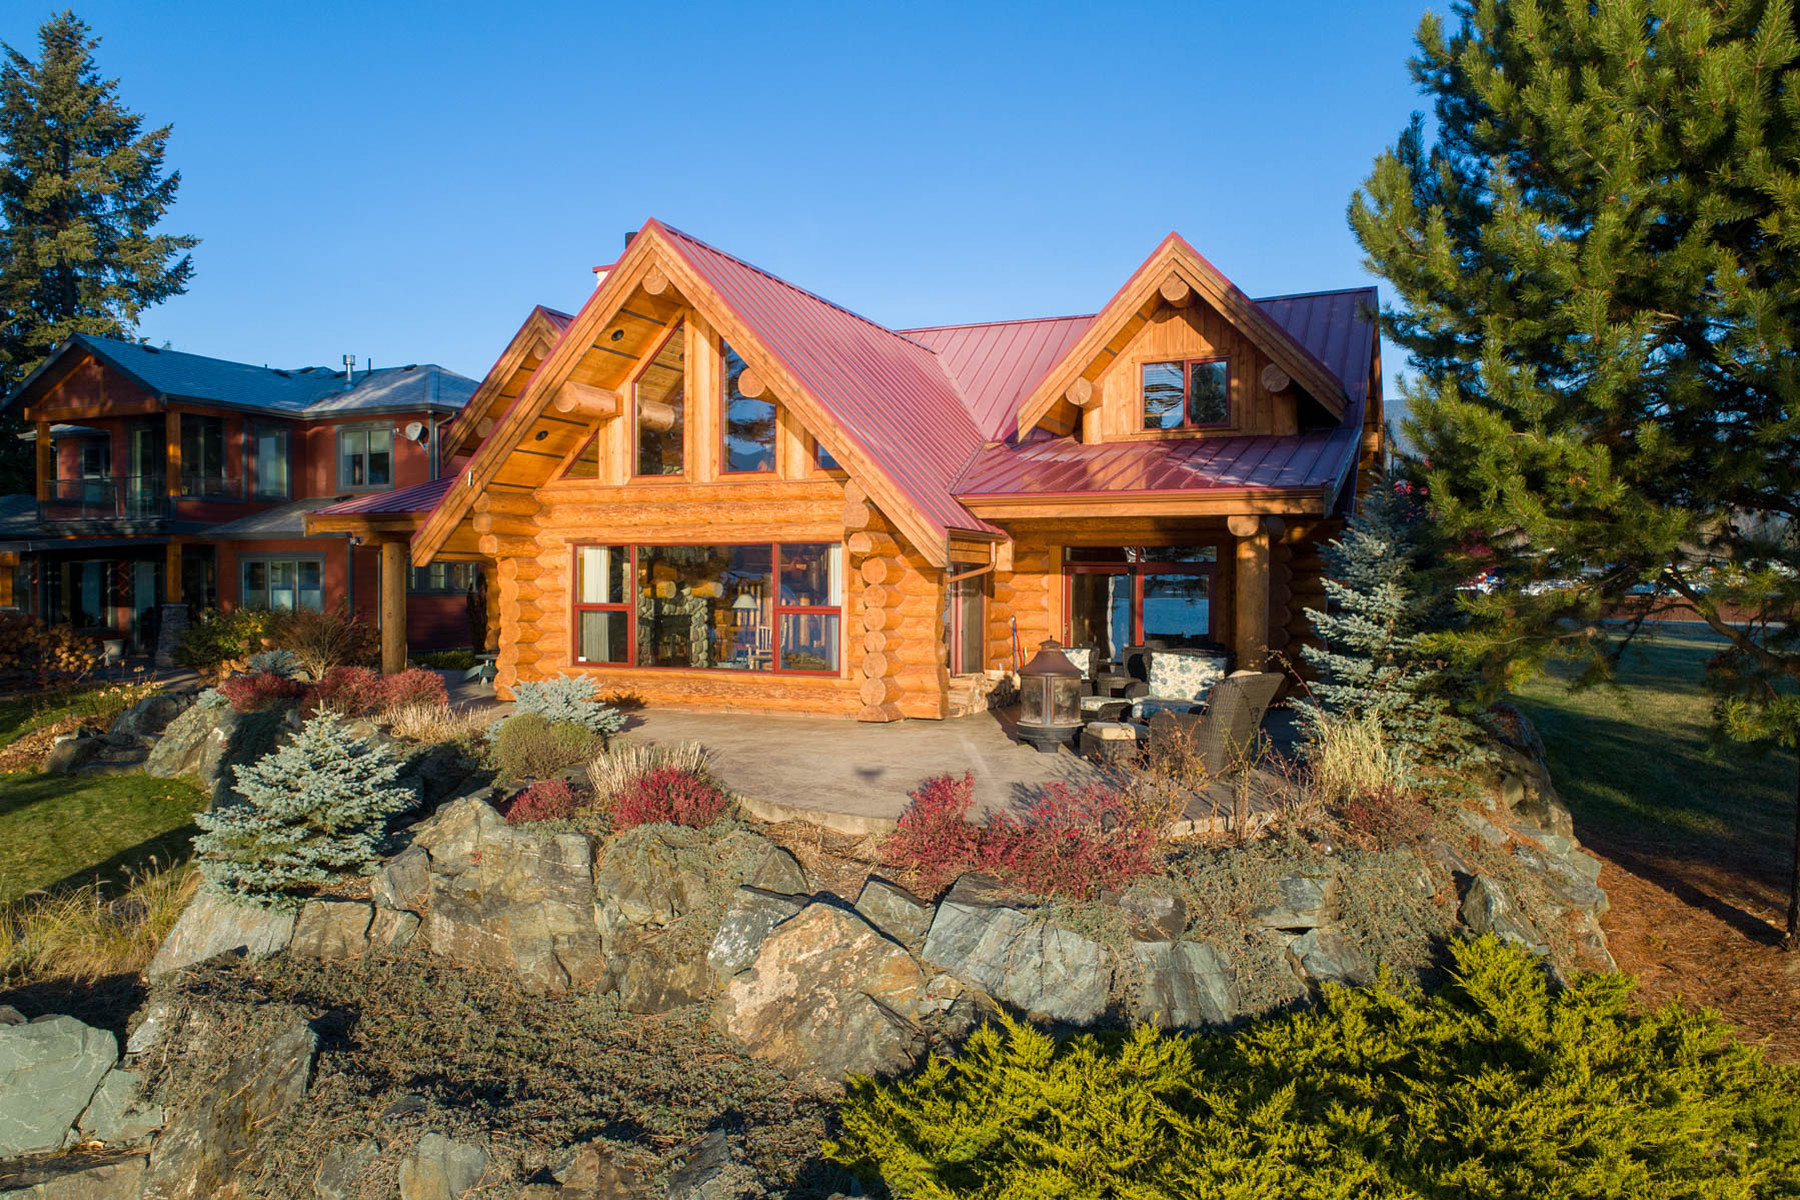 Single Family Homes for Sale at Luxurious Waterfront Log Home 3900 Acton Place Scotch Creek, British Columbia V0E 1M5 Canada